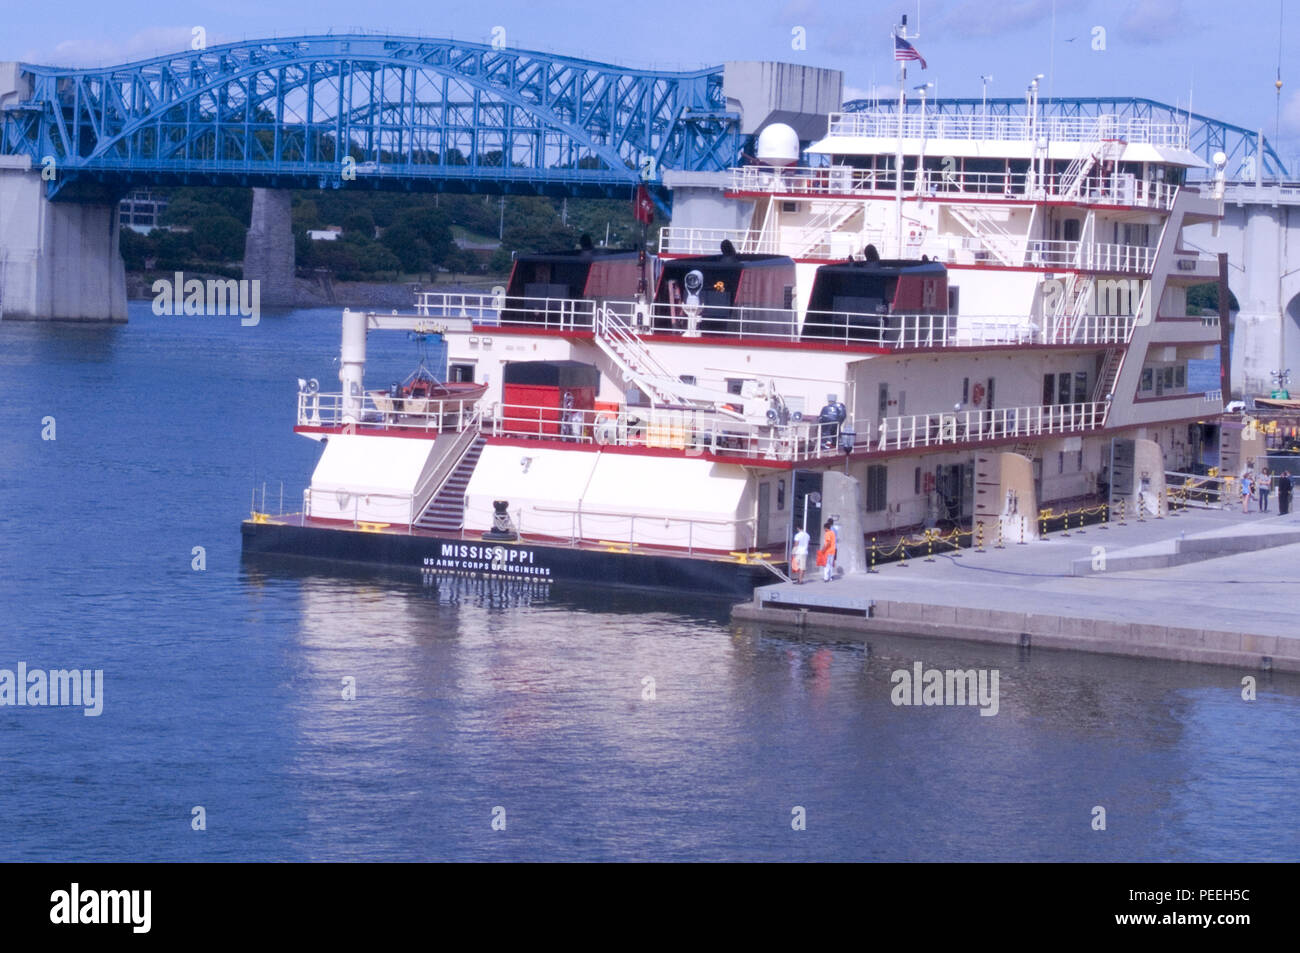 The Motor Vessel Mississippi is docked at Ross's Landing in Chattanooga, Tenn., Aug. 7, 2015. The M/V Mississippi spends more than 90 percent of its time as a working towboat, moving barges, equipment and supplies on the lower Mississippi River. The M/V Mississippi, built in 1993 by Halter Marine, is the fifth Army Corps of Engineers towboat to bear the name. It is the largest diesel towboat in the United States at 241-feet long, 58-feet wide and five stories high. Three 2,100-horsepower diesel engines power the vessel. (USACE photo by Leon Roberts) - Stock Image